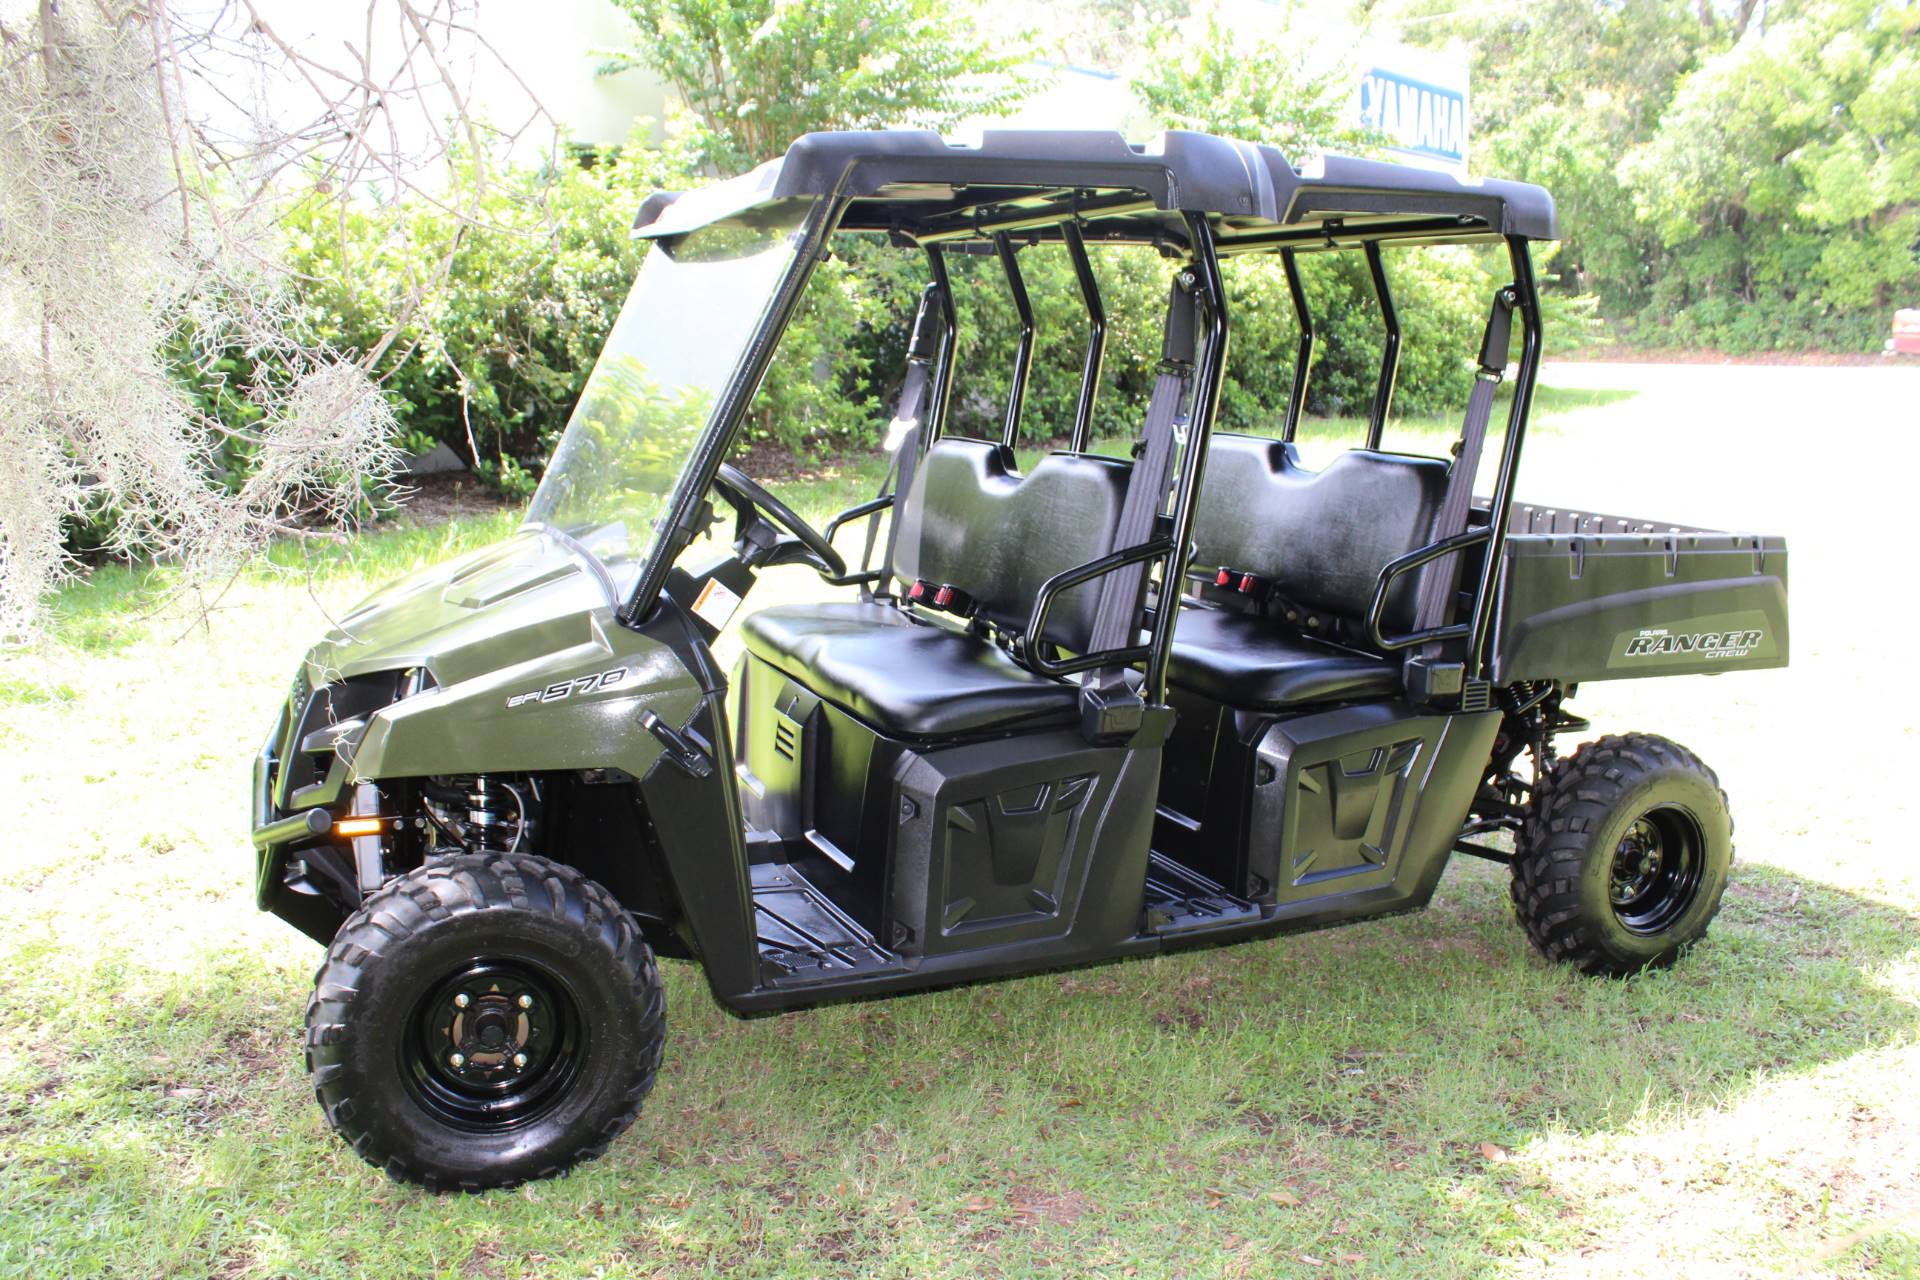 2014 polaris ranger crew 570 efi for sale palatka fl 48329. Black Bedroom Furniture Sets. Home Design Ideas